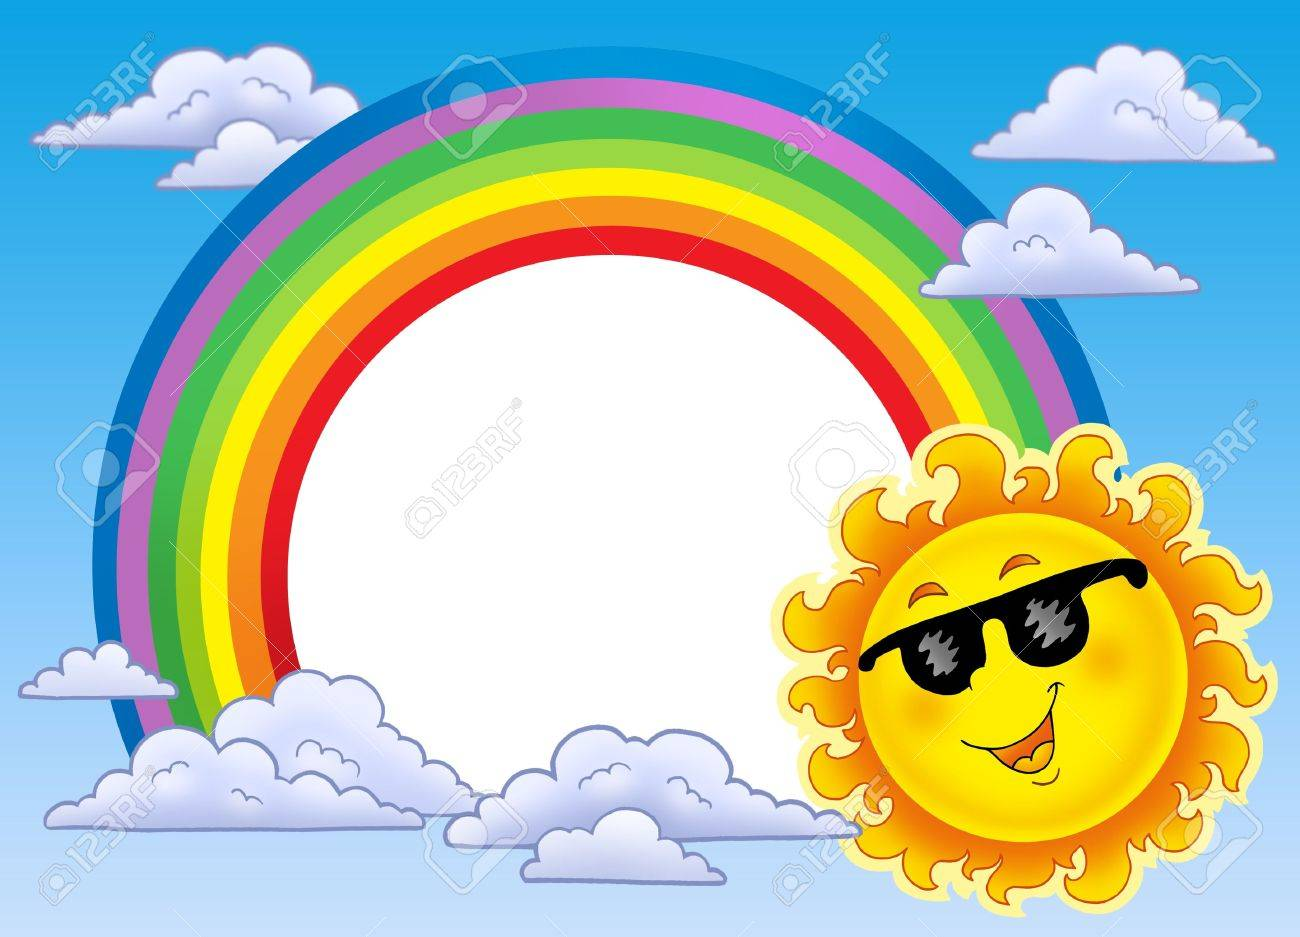 Rainbow Frame With Sun In Sunglasses - Color Illustration. Stock ...